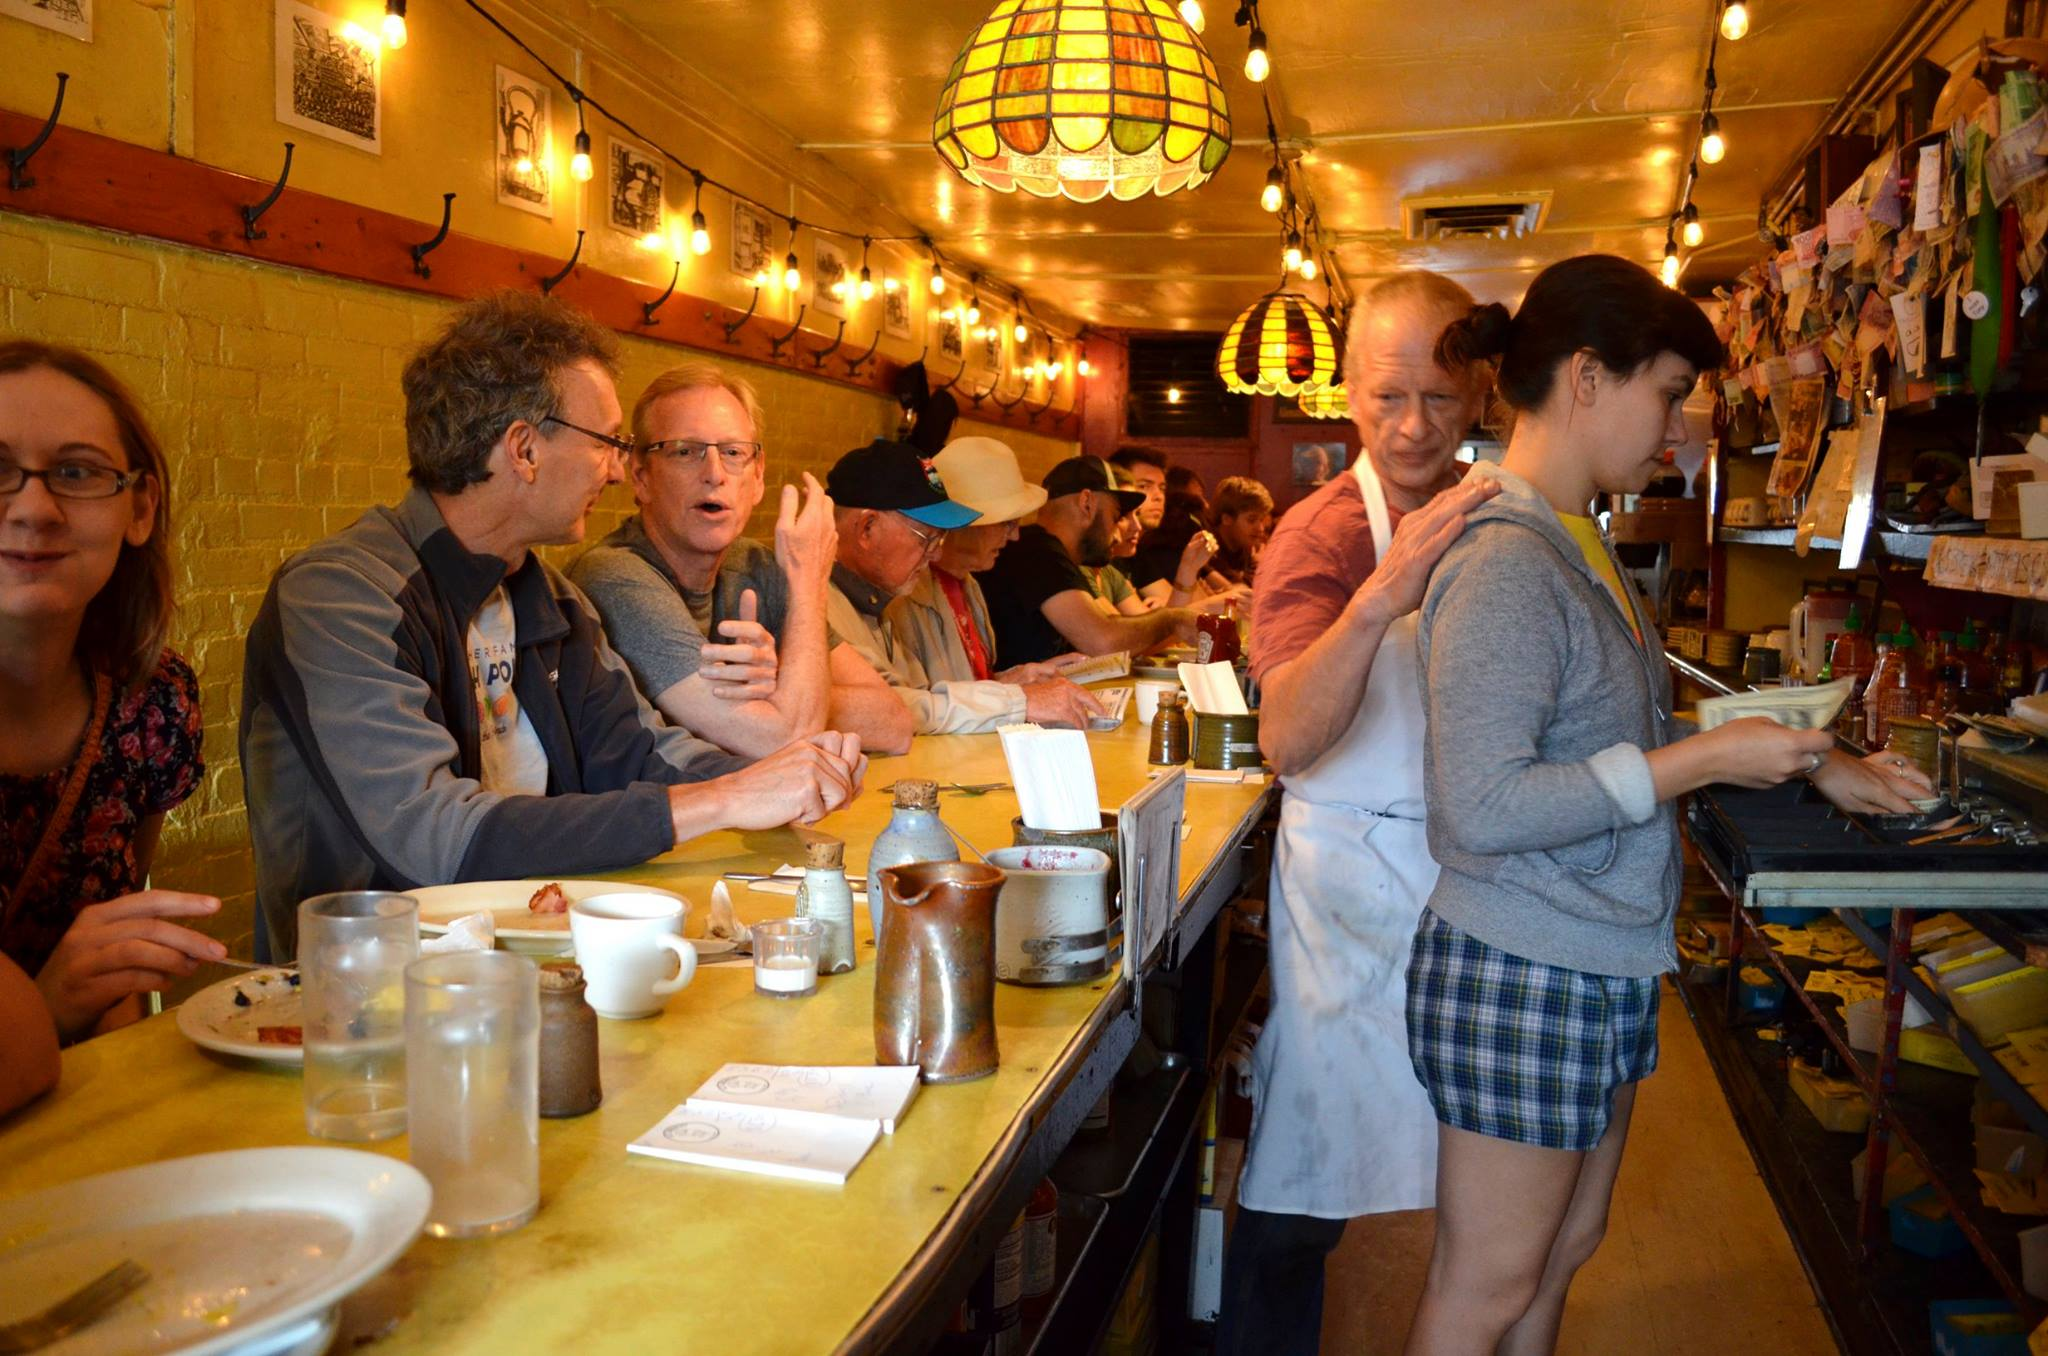 Caption: Al's Diner in Dinkytown, Minneapolis, USA., Credit: Todd Melby